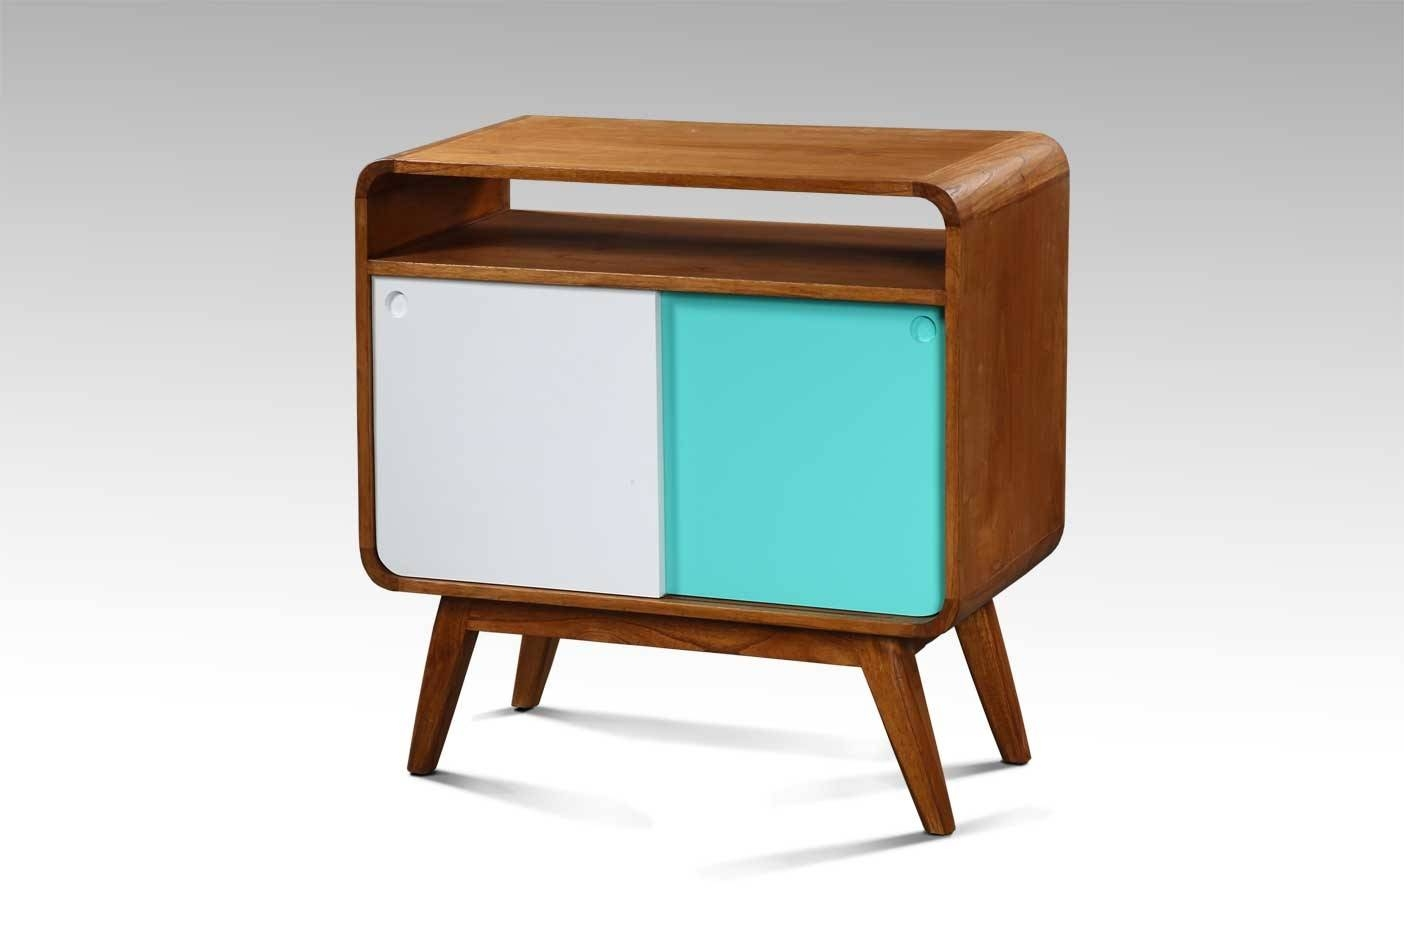 Pasion For Retro - Mia Casa - Dress Up Your Home within Retro Sideboards (Image 16 of 30)